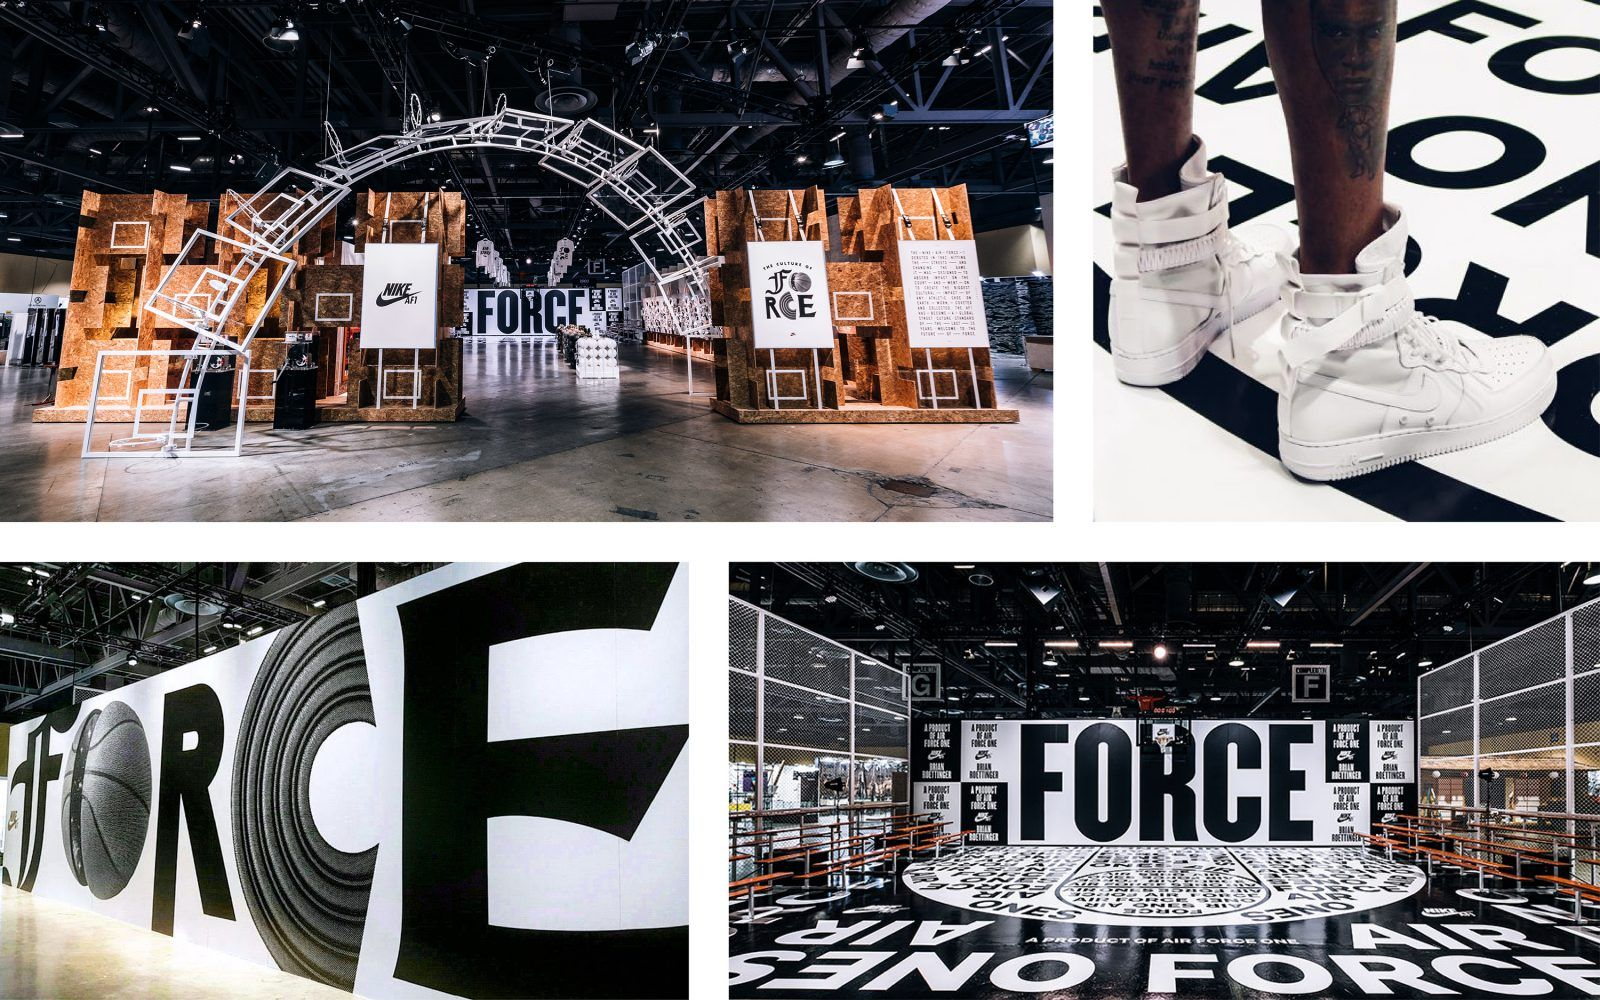 NIKE ComplexCon National forest, Retail interior, National